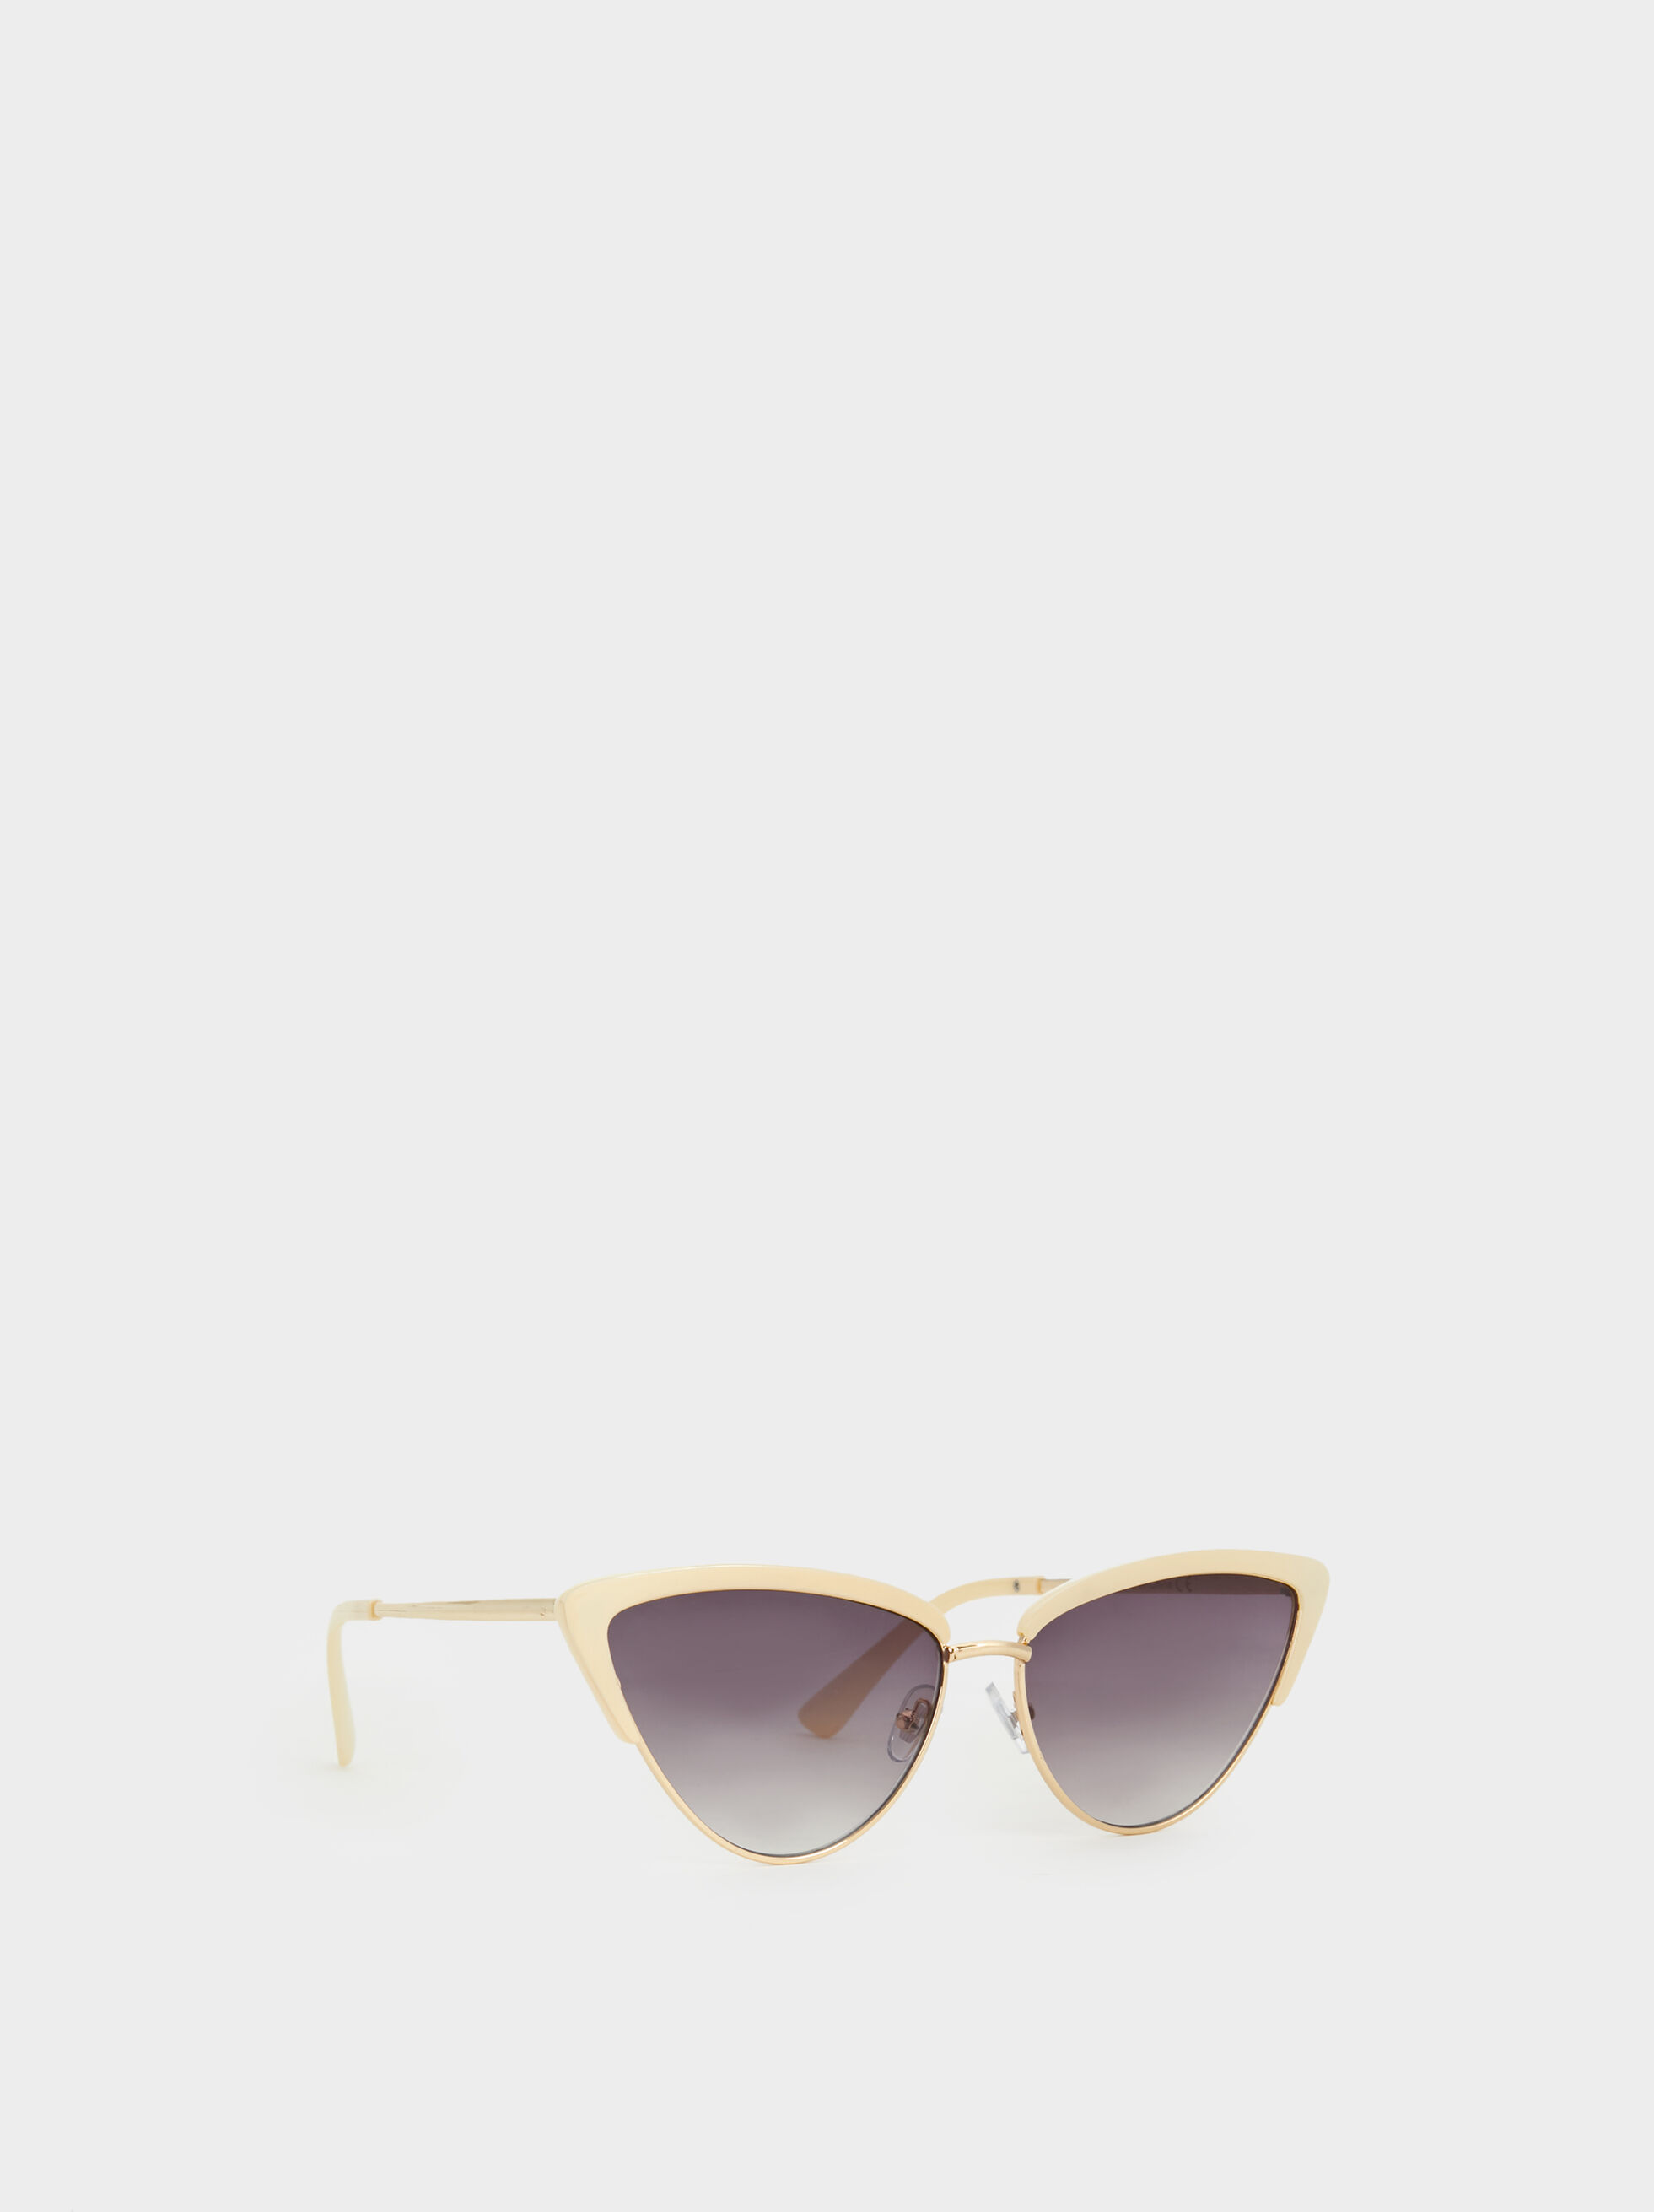 Cateye Sunglasses, White, hi-res